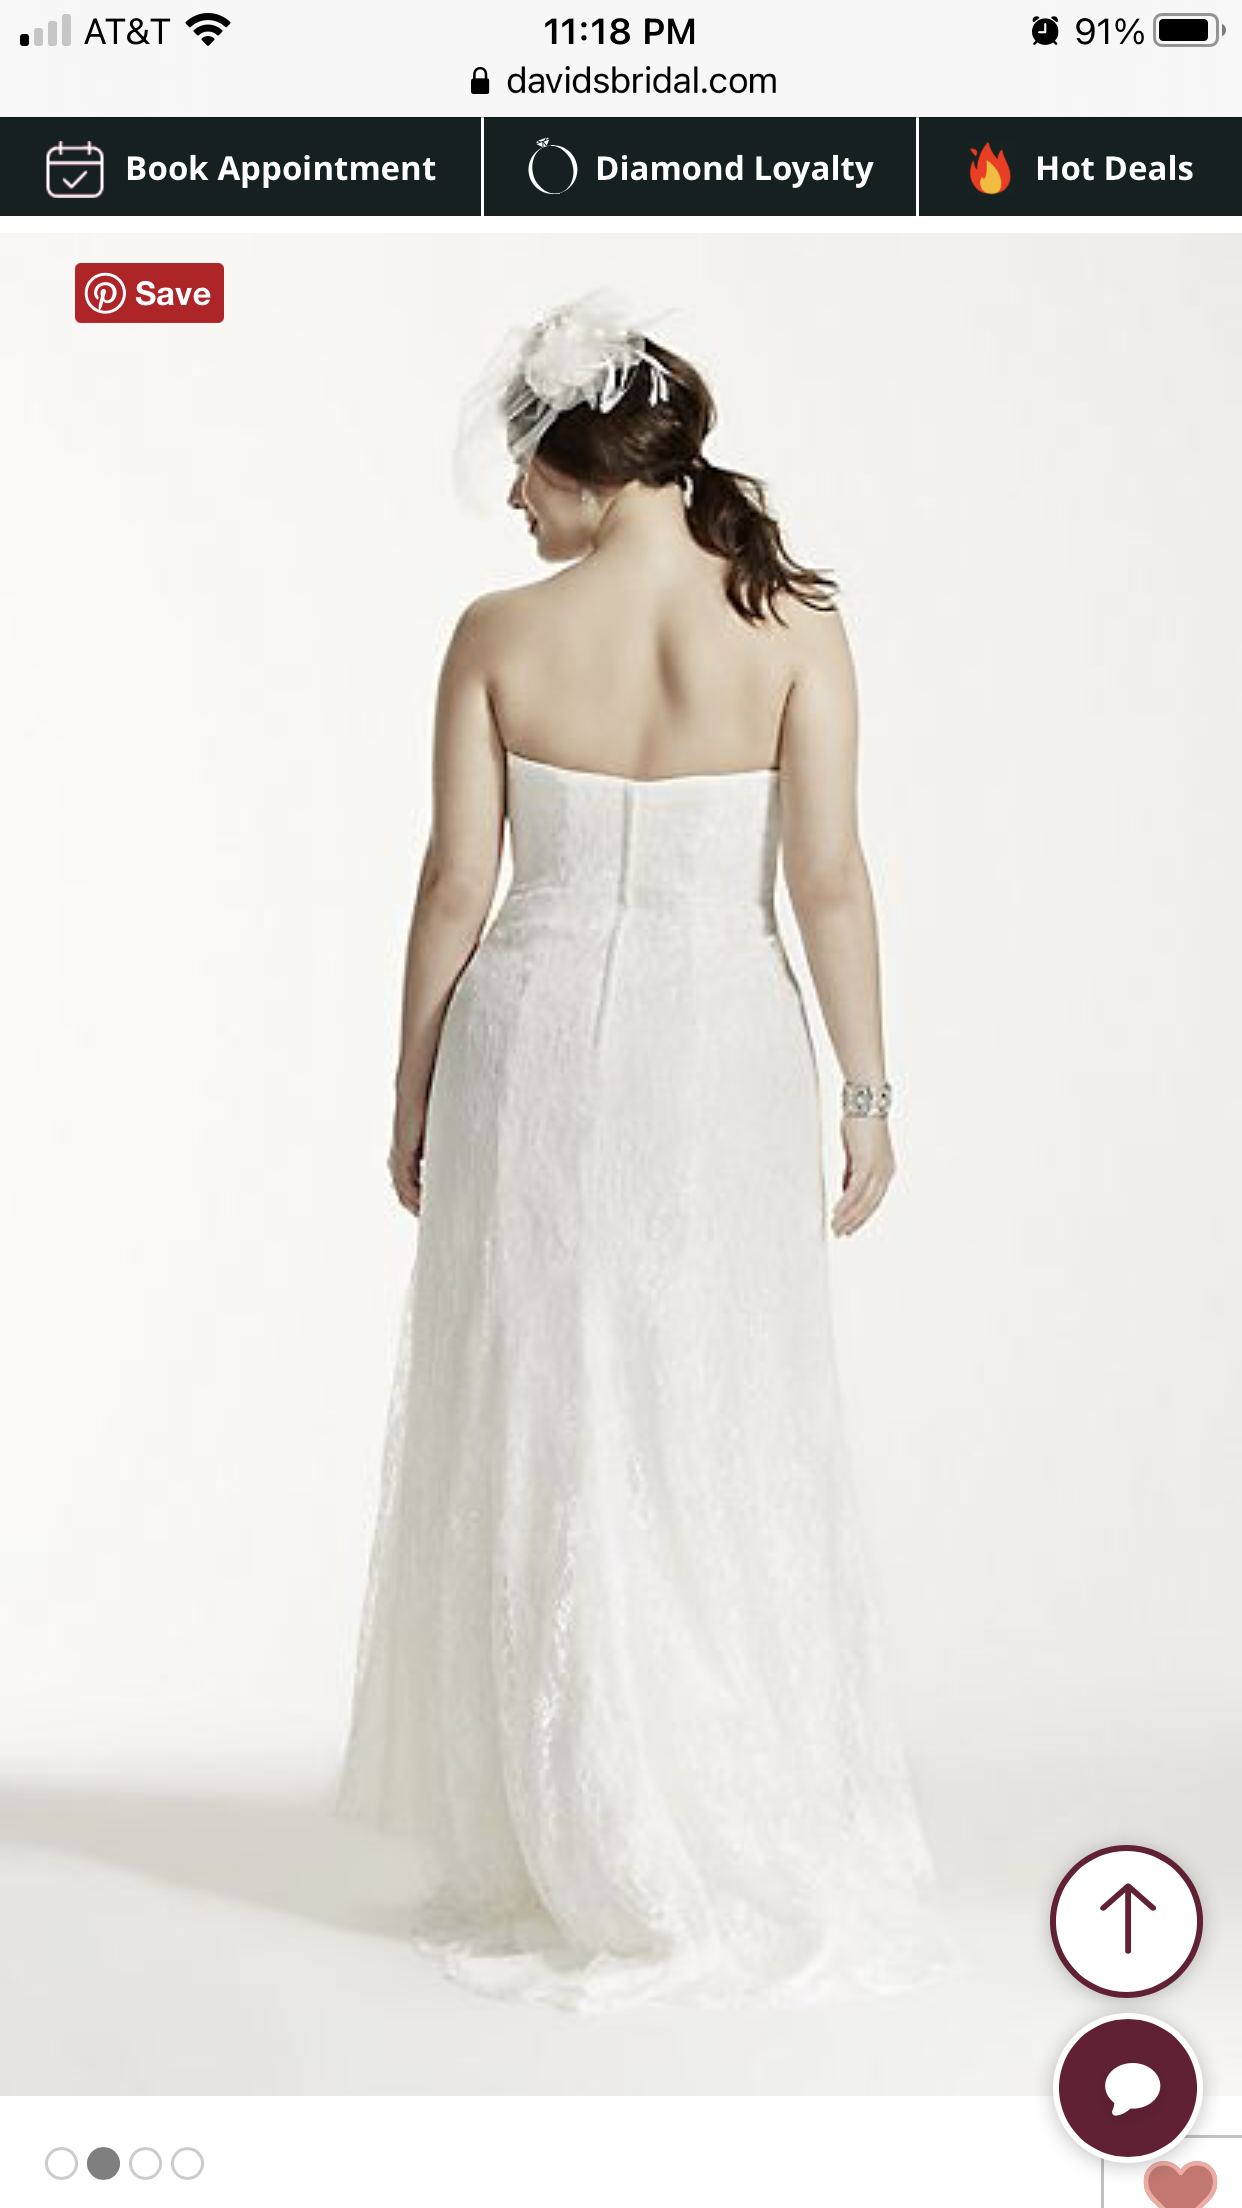 David's bridal - Lace Staple  size 14 - $400 - (11% OFF)